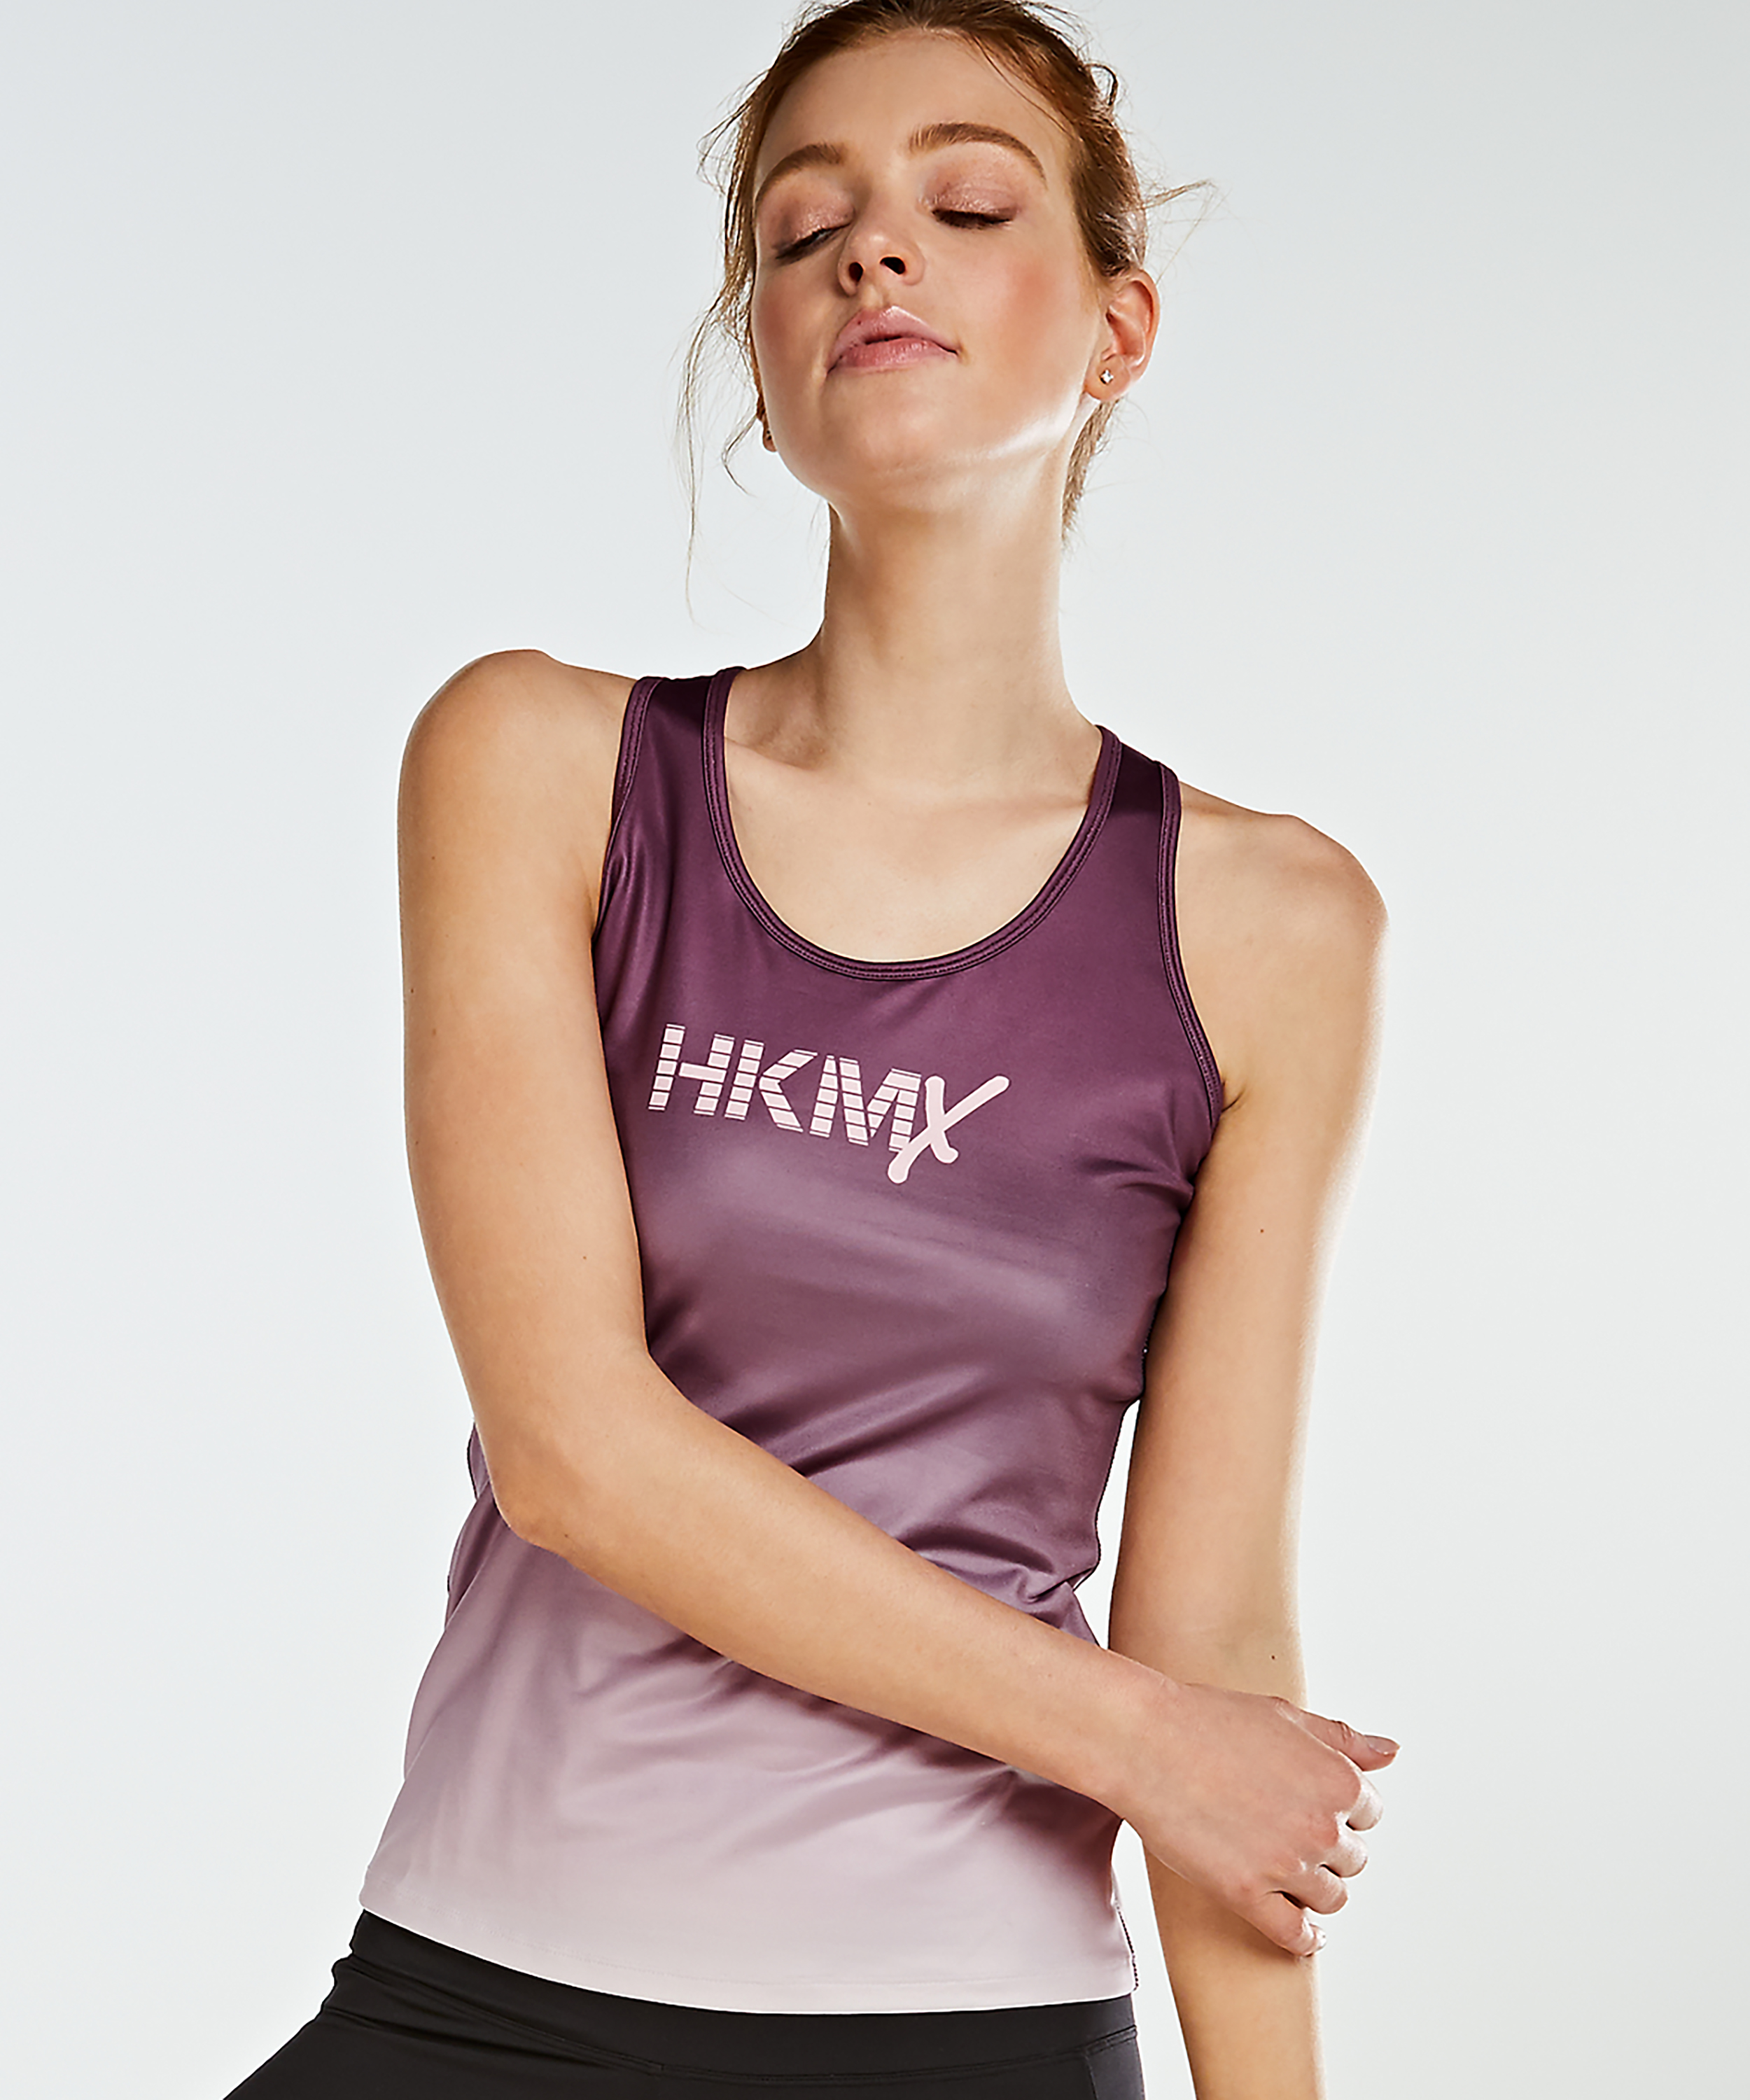 HKMX Tanktop Tight Fit, Lila, main